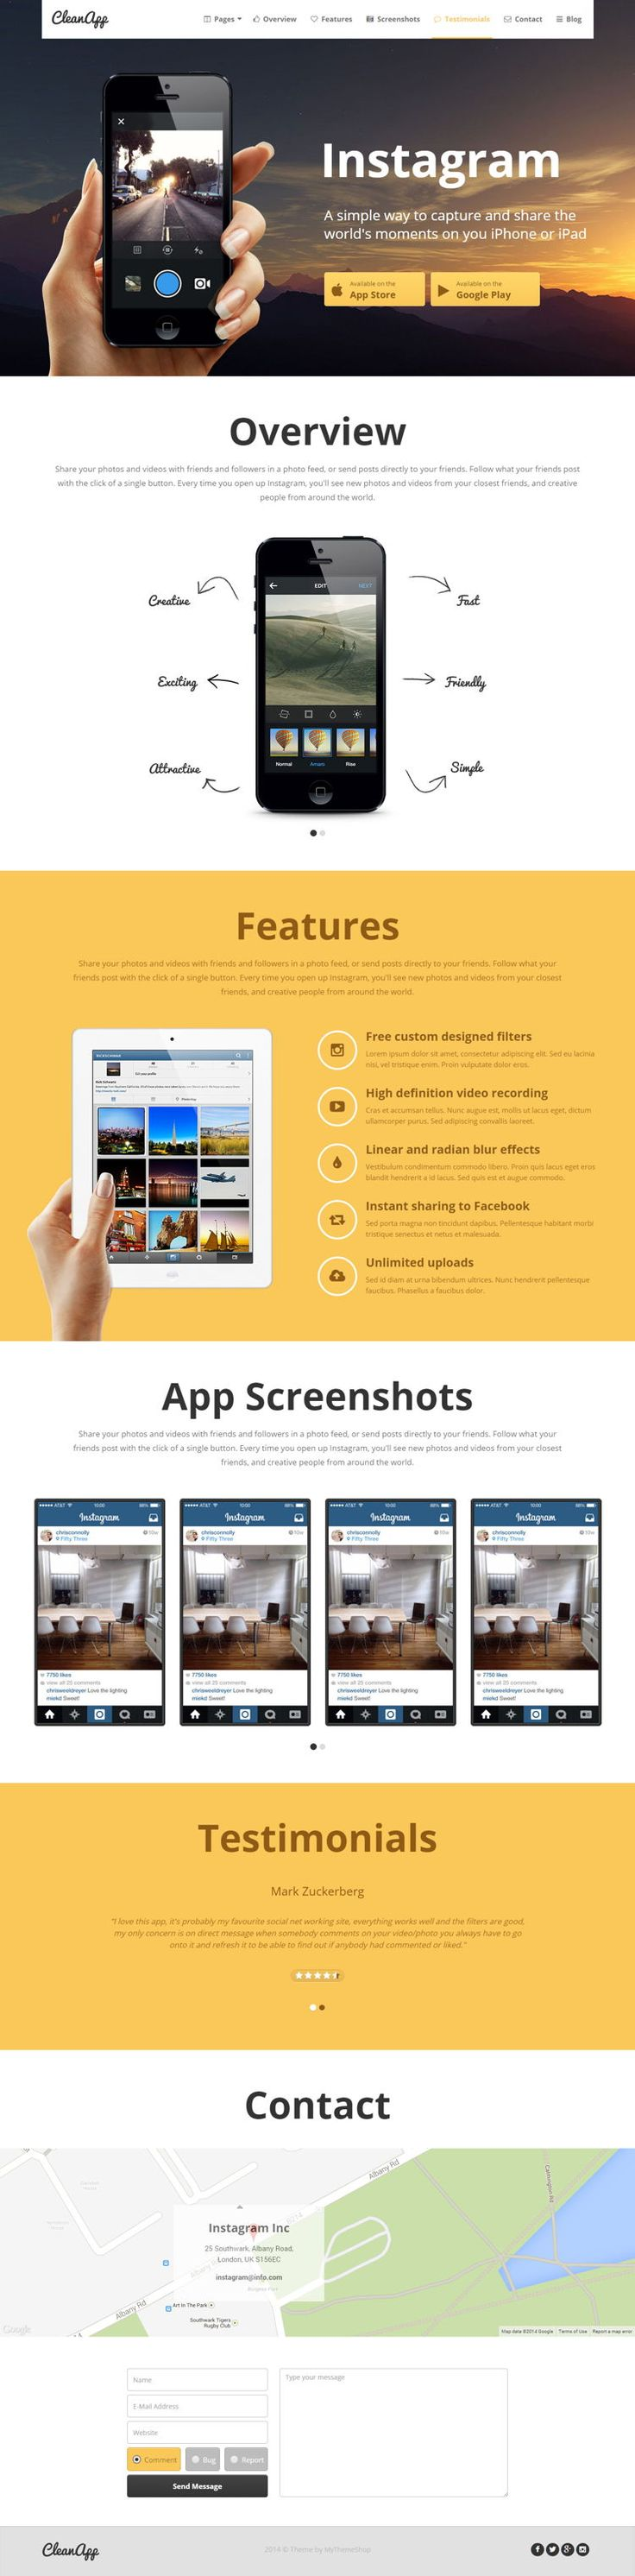 CleanApp #WordPress #Theme  #WPTheme #WebDesign  #Multimedia #MobilApp | #WPThemeHouse